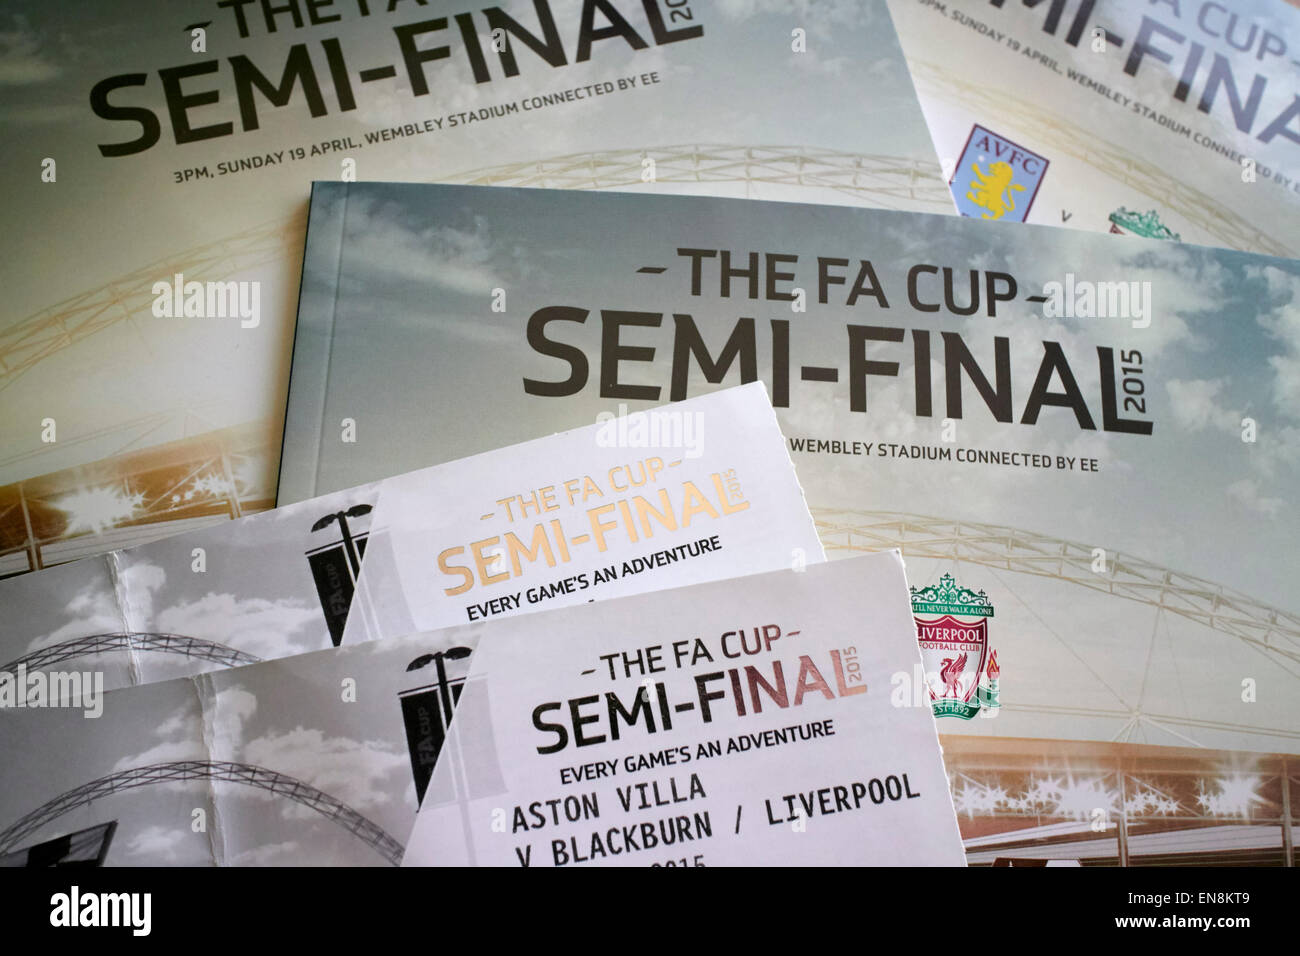 fa cup semi final tickets and programmes - Stock Image